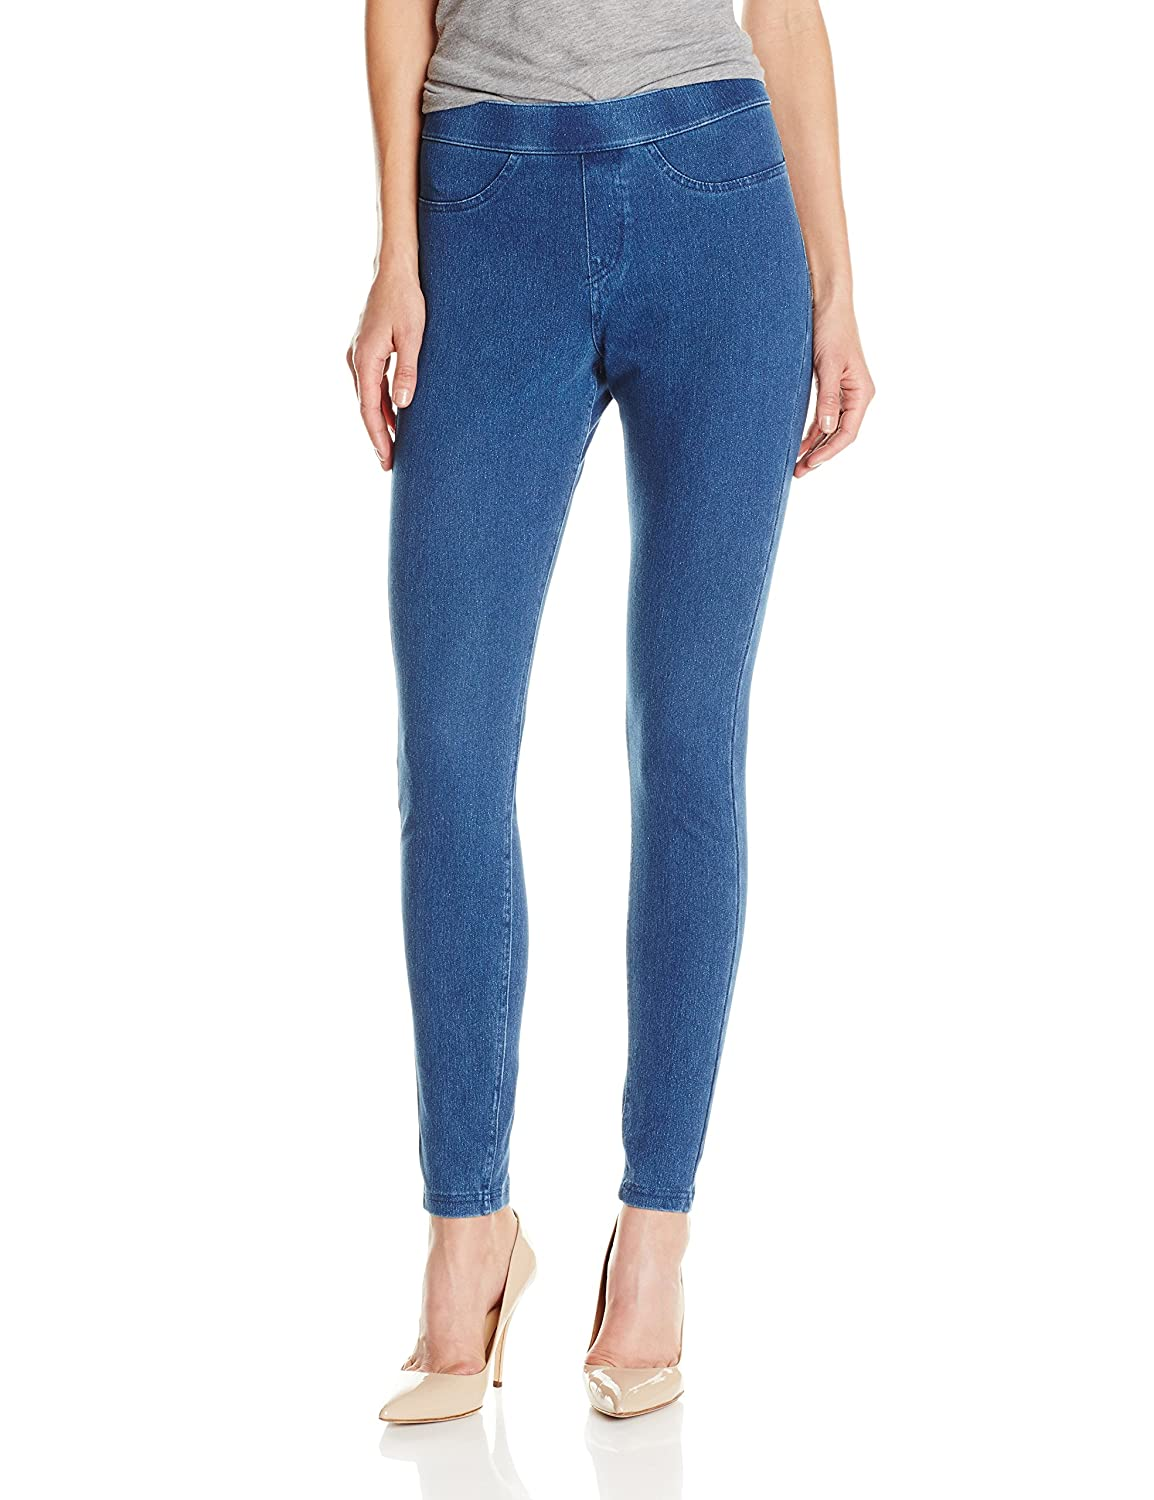 Hue Women's Curvy Fit Jeans Leggings U14561-421